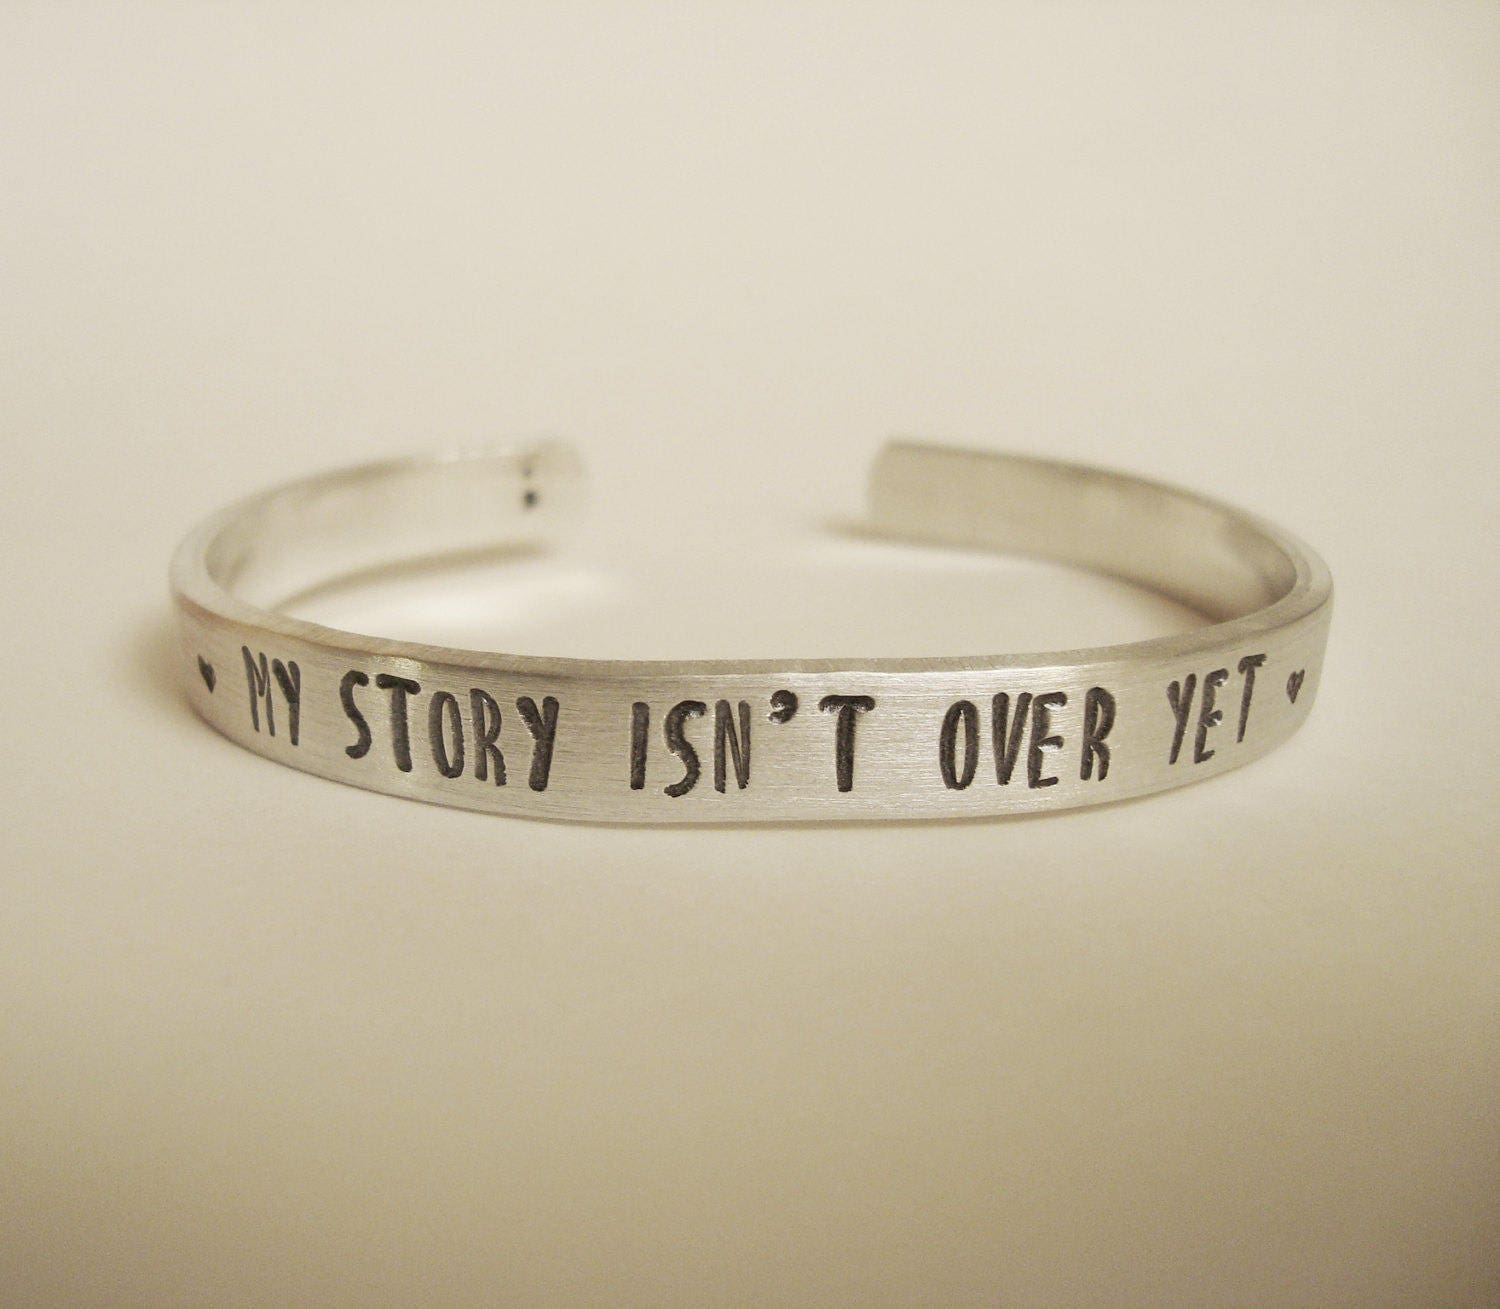 My Story Isn't Over Yet Hand Stamped Aluminum Bracelet Suicide Prevention Semicolon